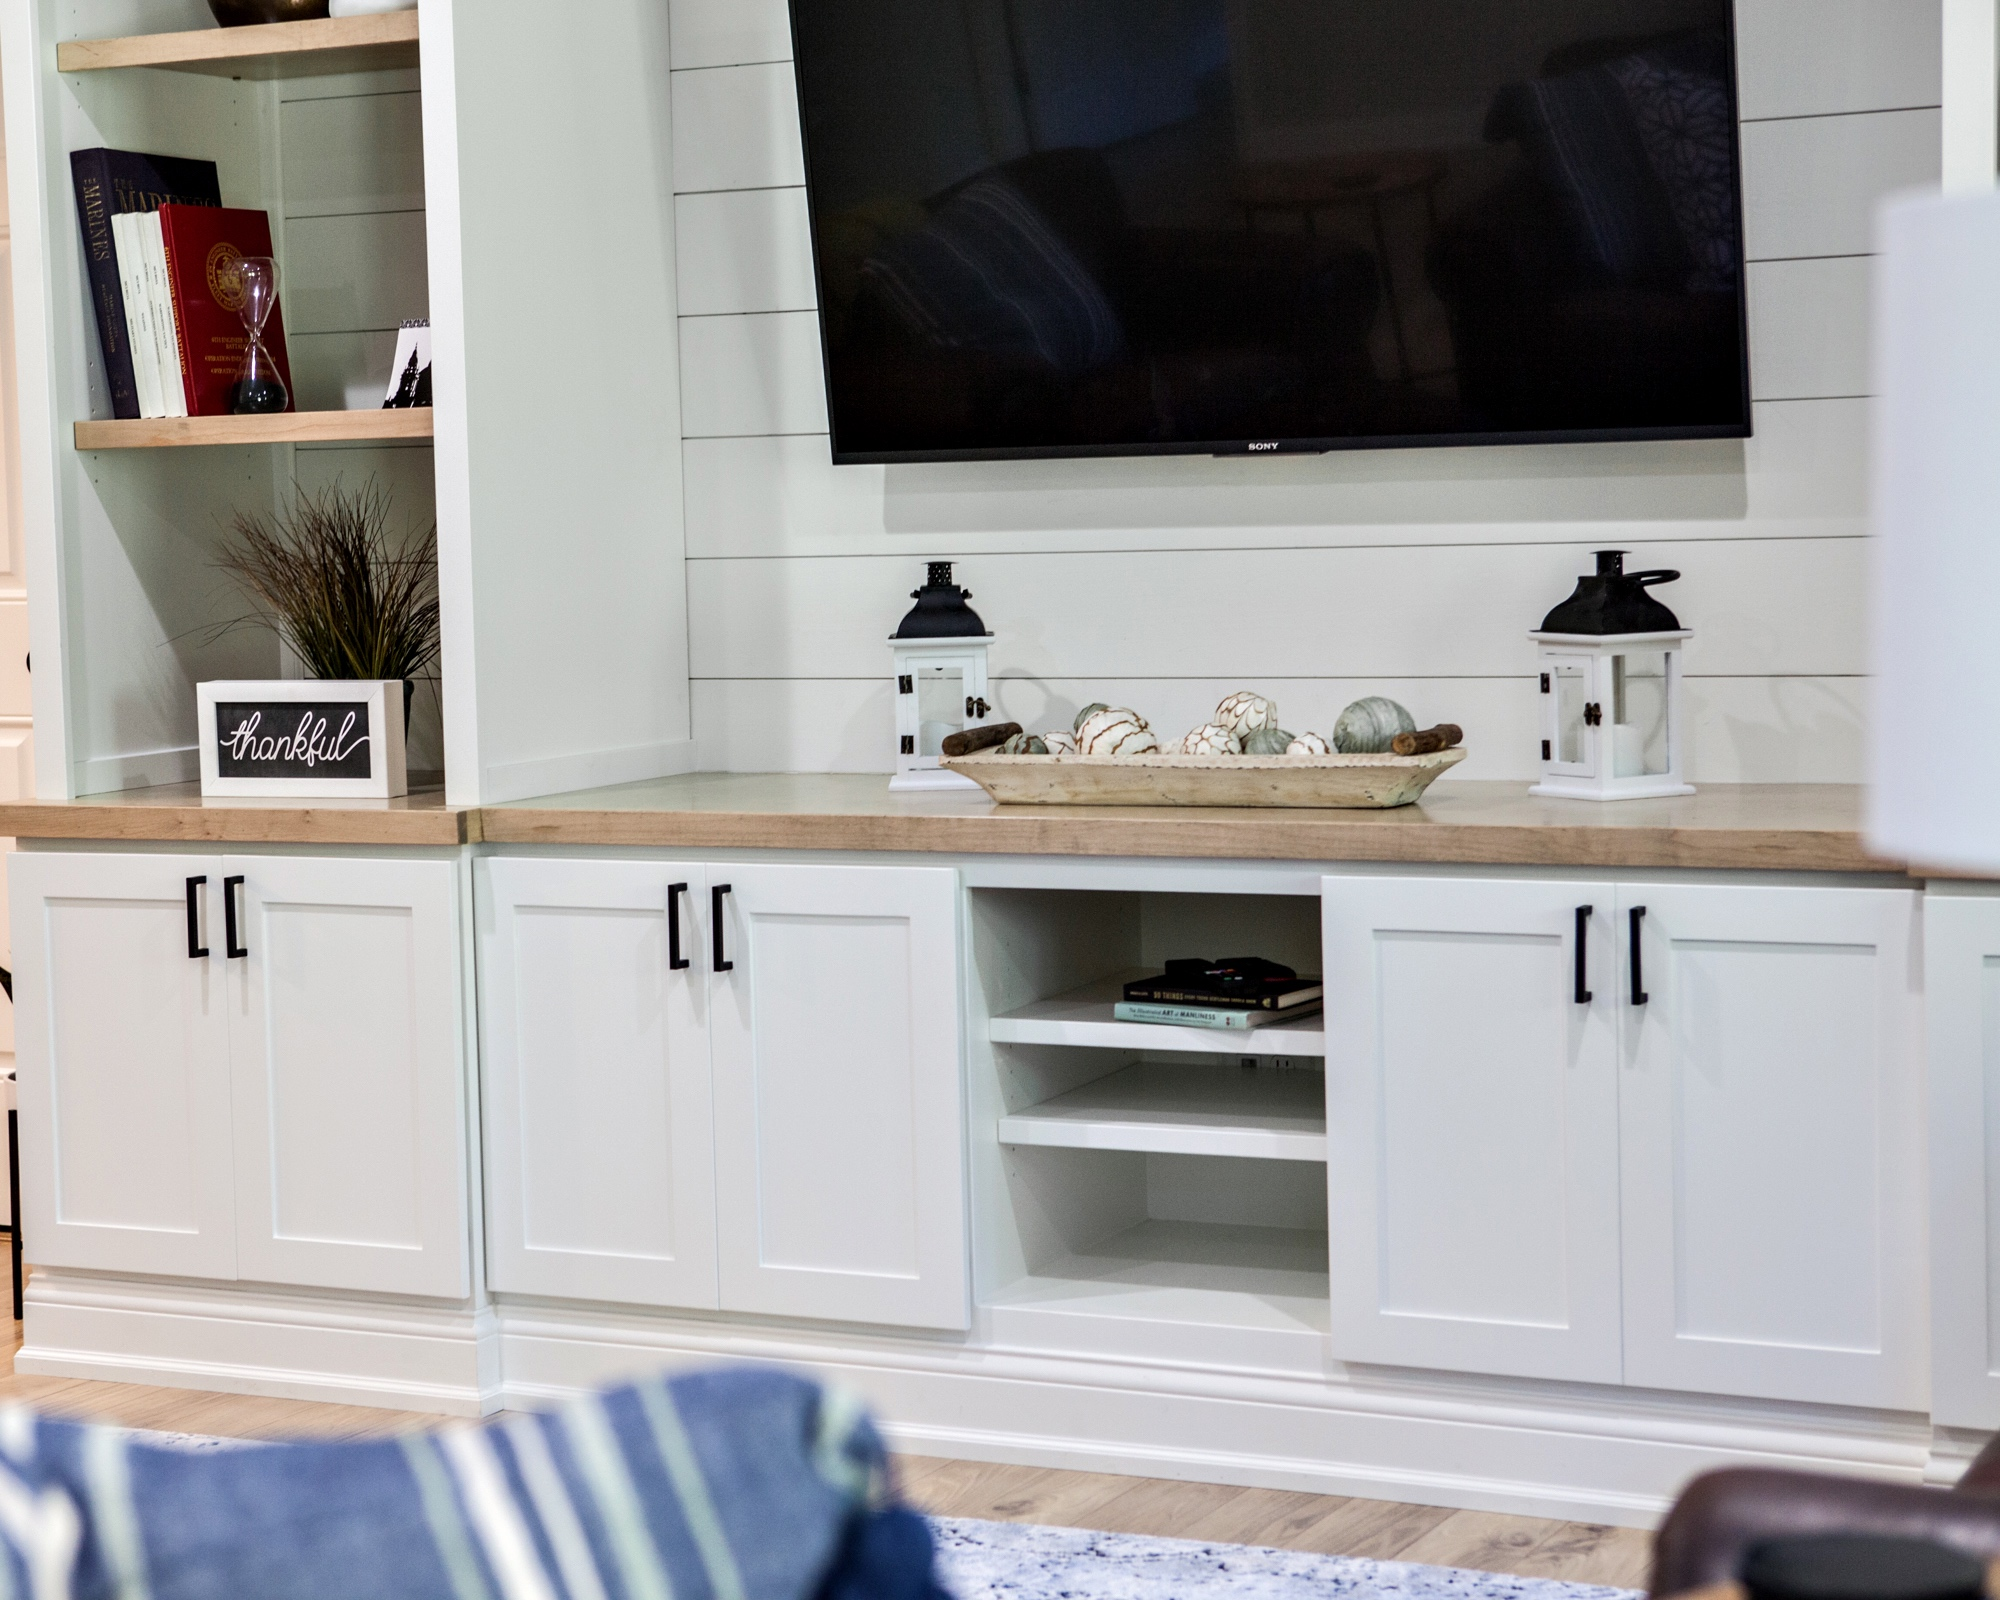 CUSTOM CABINETRY - From kitchen cabinets & bathroom vanities to living room built-ins, we work with carpenters to design functional pieces to fit your style.